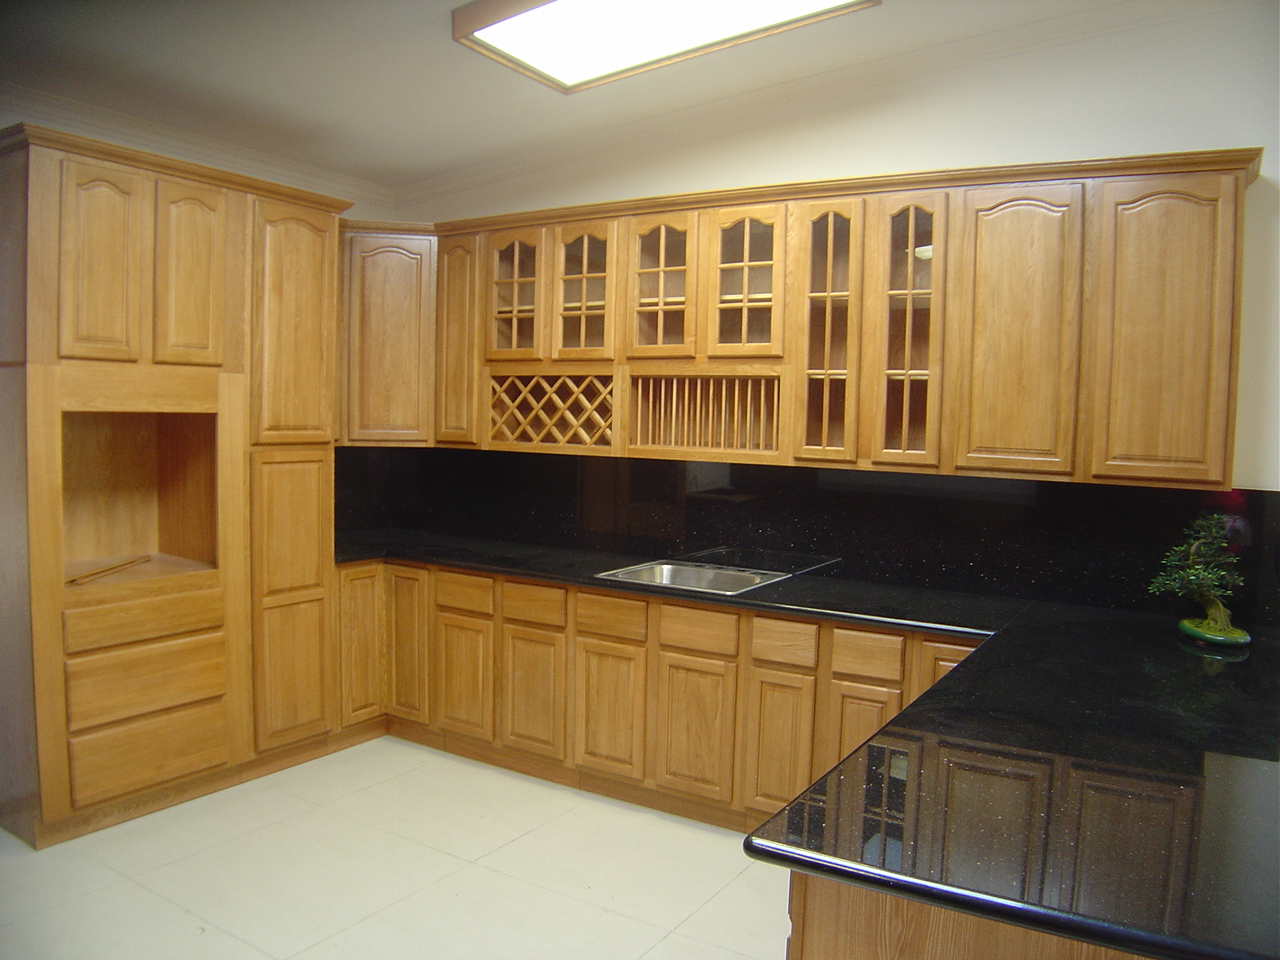 Oak kitchen cabinets for your interior kitchen minimalist for Remodeling kitchen cabinets ideas